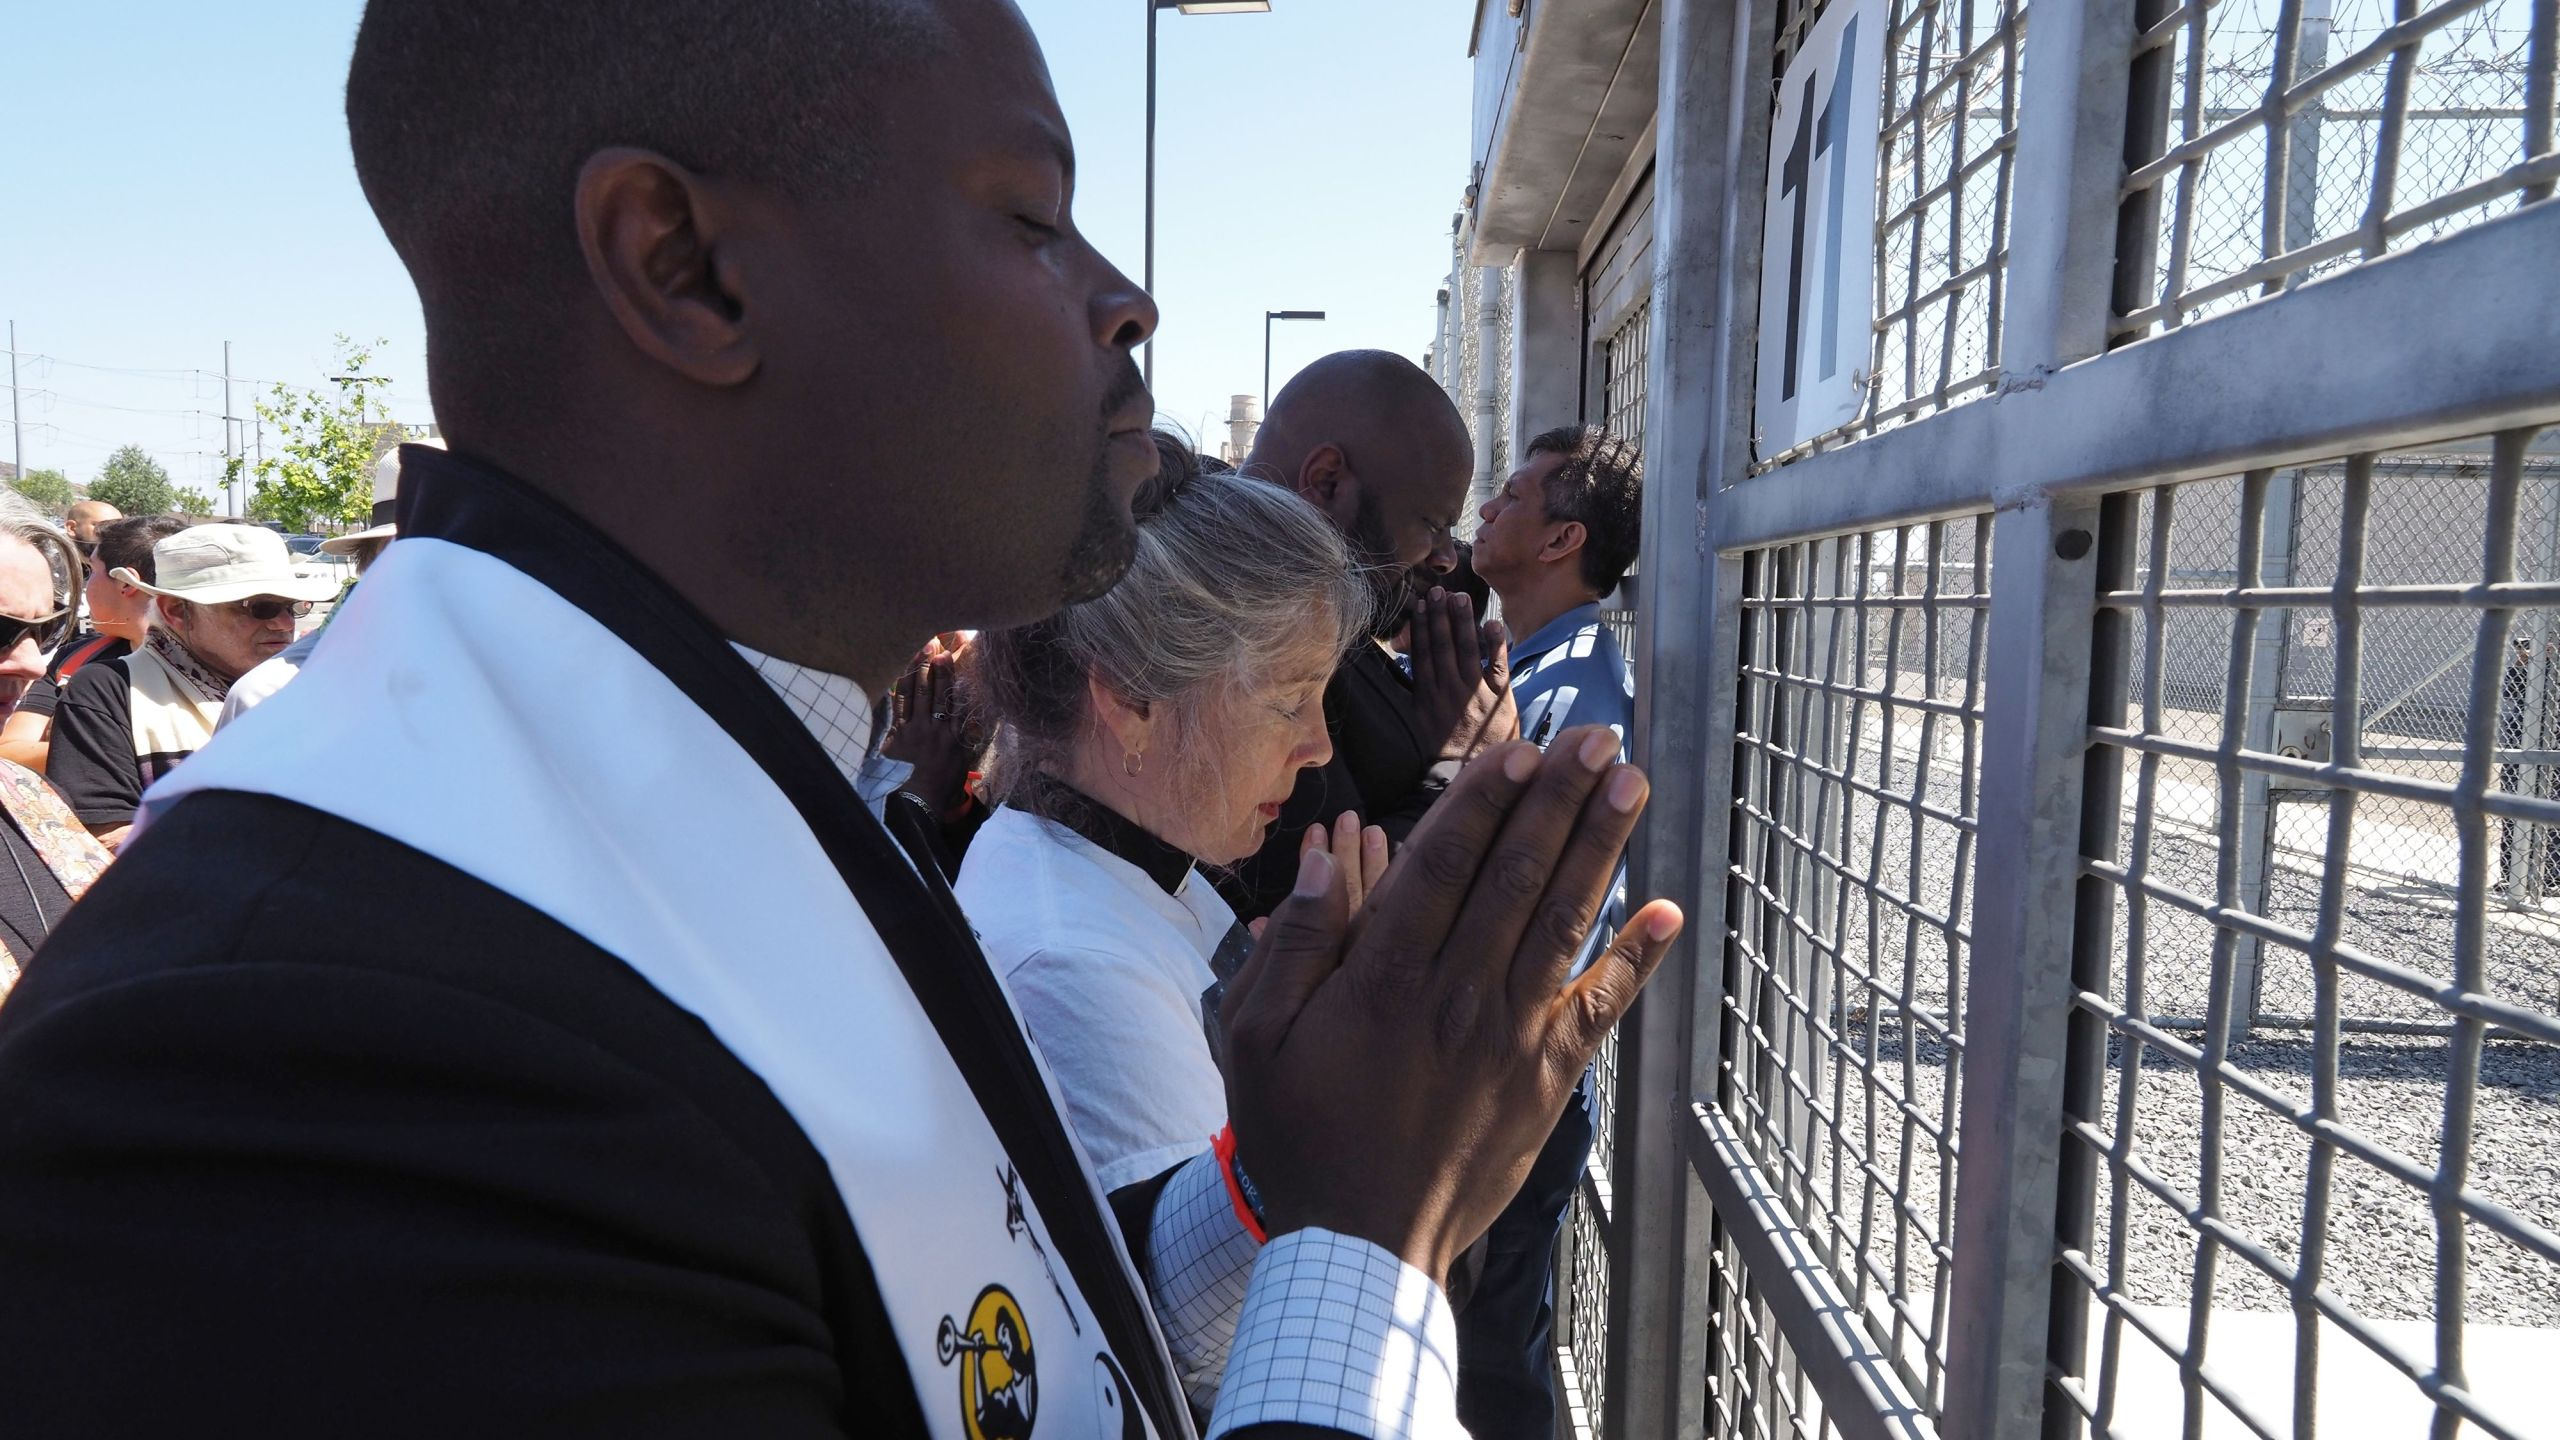 Members of the clergy pray at the entrance to the Otay Mesa Detention Center during a demonstration against U.S. immigration policy that separates children from parents on June 23, 2018. (Credit: Robyn Beck / AFP / Getty Images)